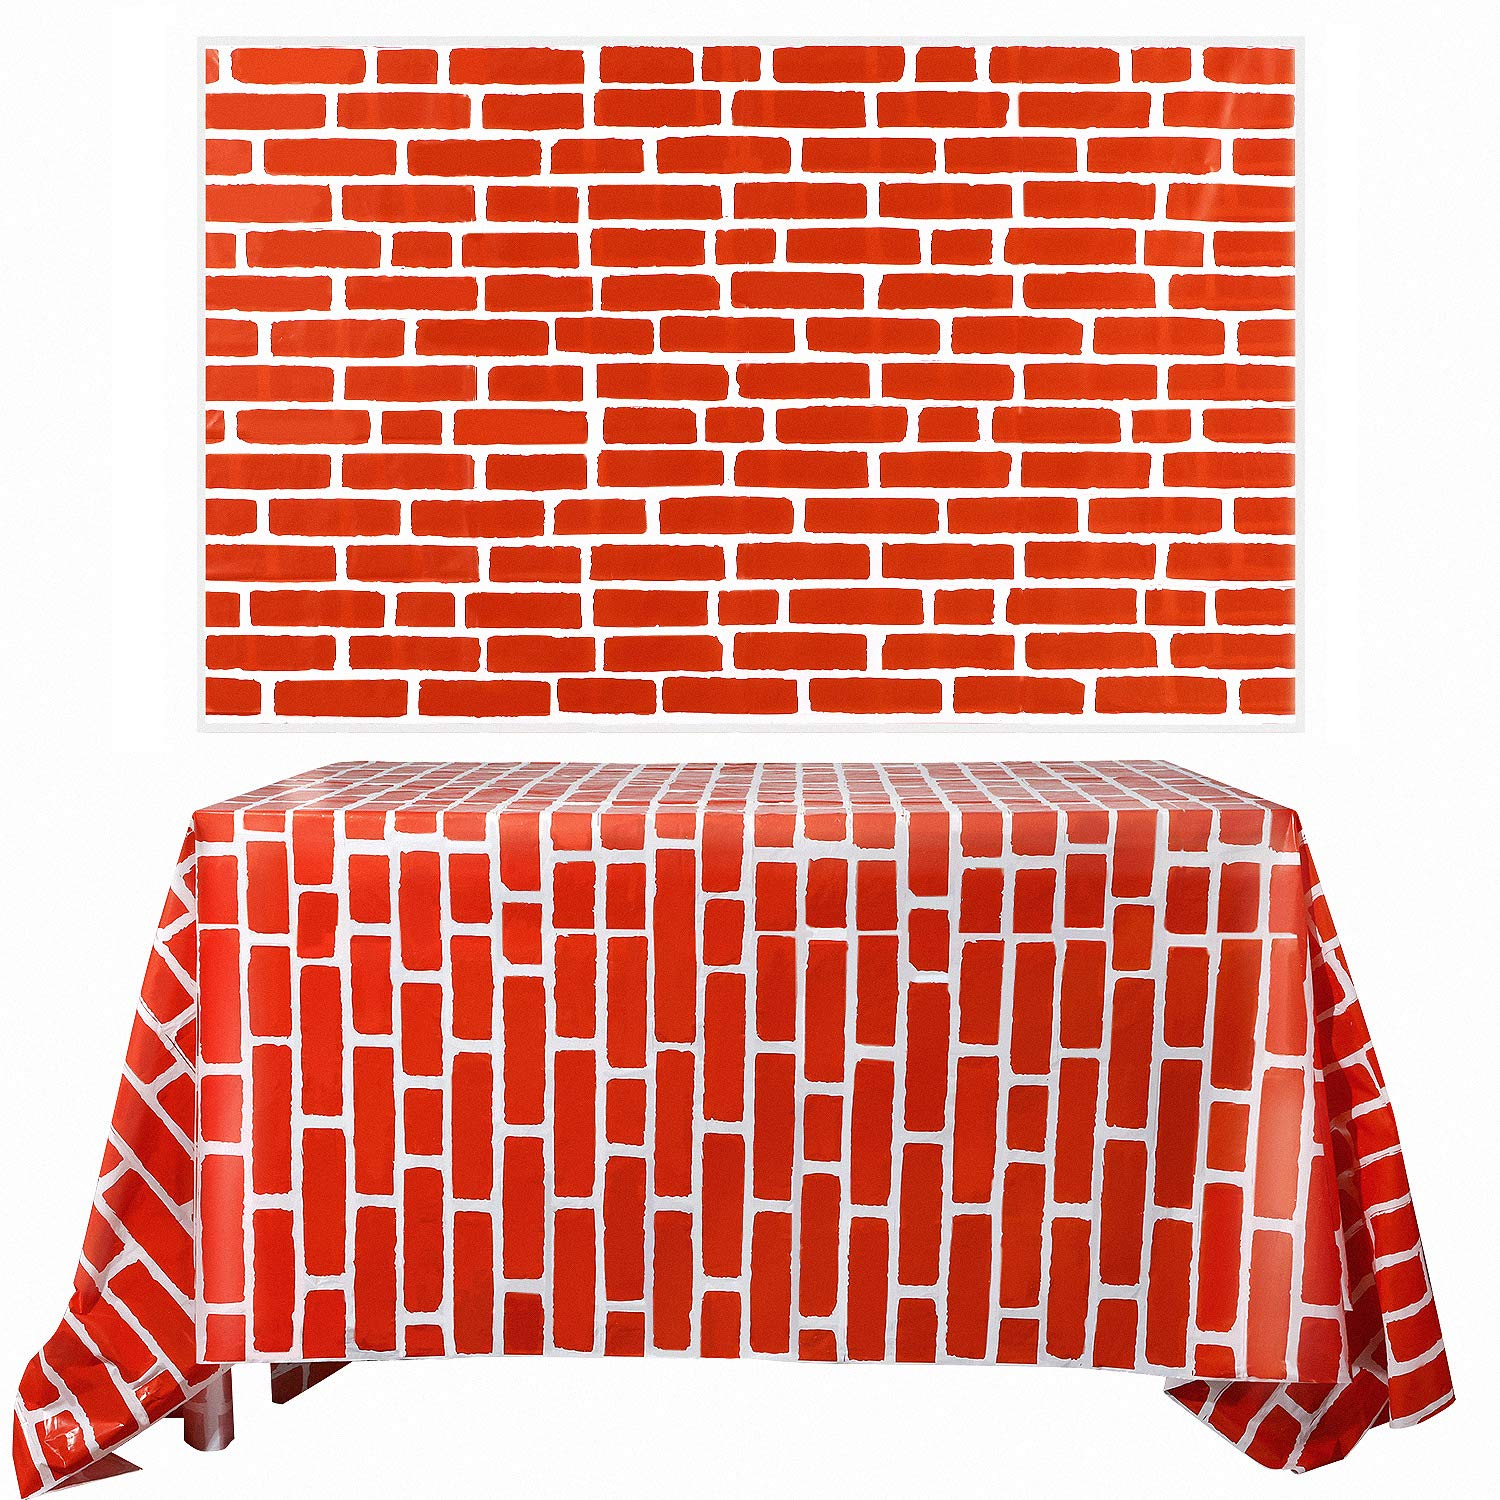 Chuangdi 2 Sheets 4.5 x 9 Feet Brick Decal Photo Brick Wall Backdrop Brick Sticker Wallpaper for Winter/Christmas Party (Red Brick) by Chuangdi